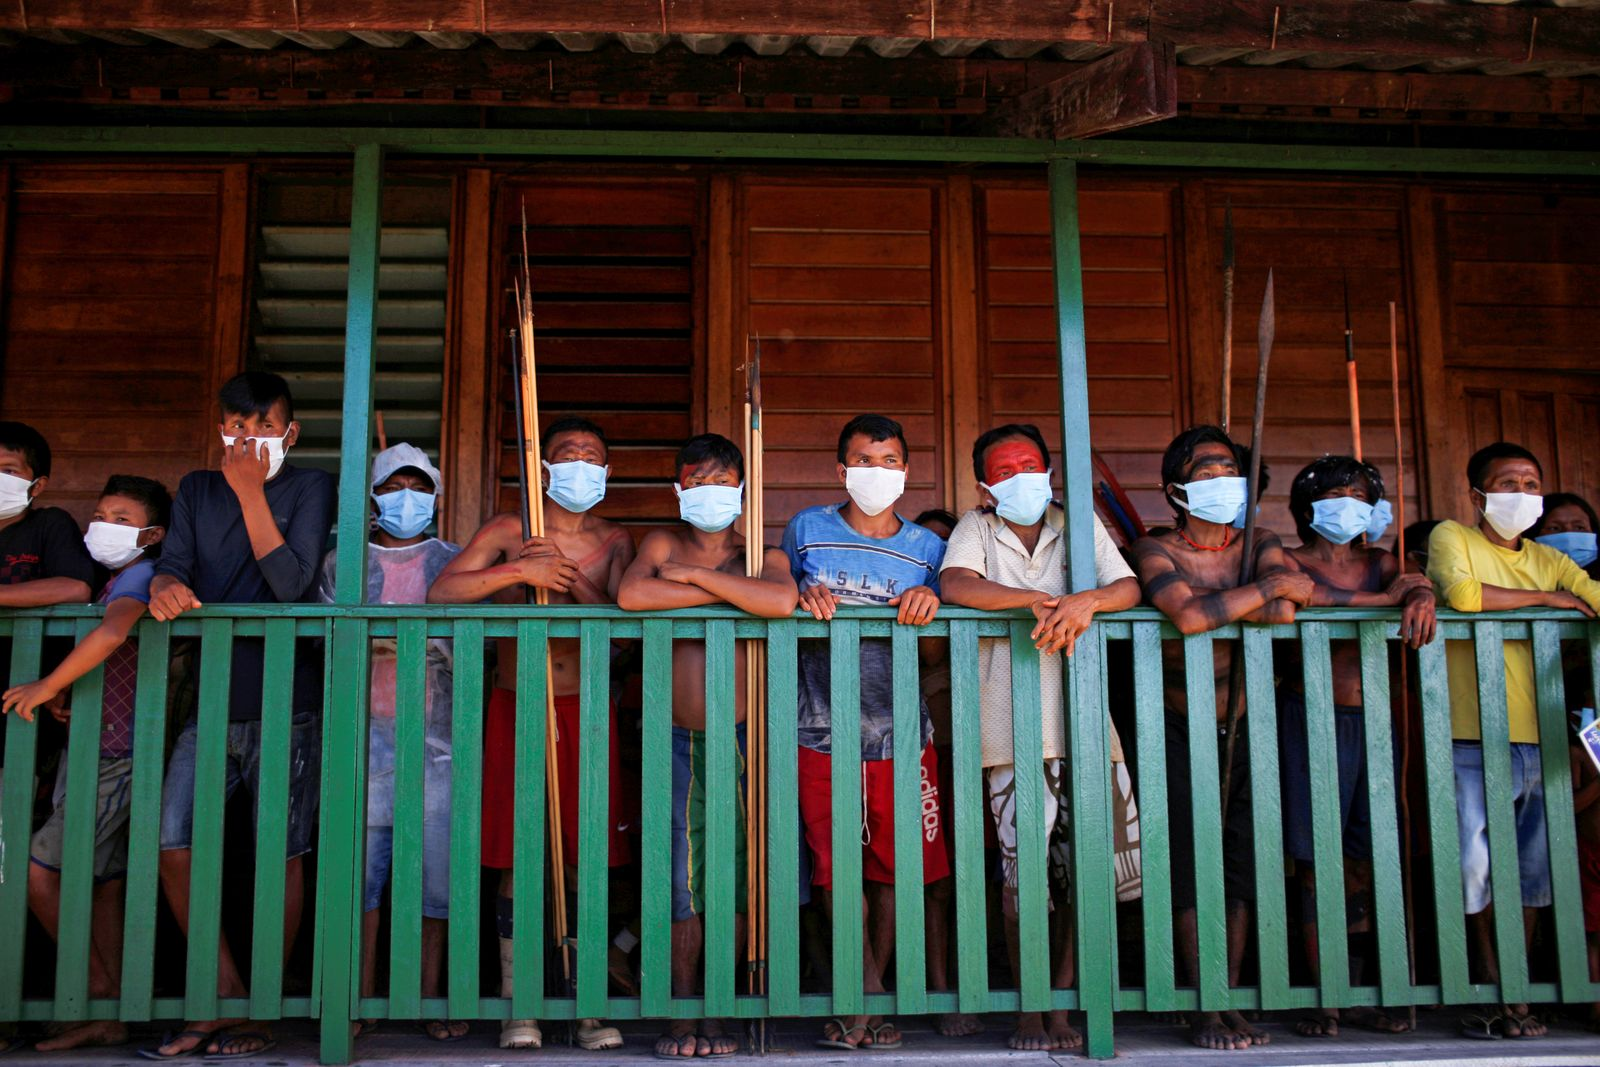 Men from the indigenous Yekuana ethnic group wearing protective face mask look on, amid the spread of the coronavirus disease (COVID-19), at the 5th Special Frontier Platoon in the municipality of Auaris, state of Roraima